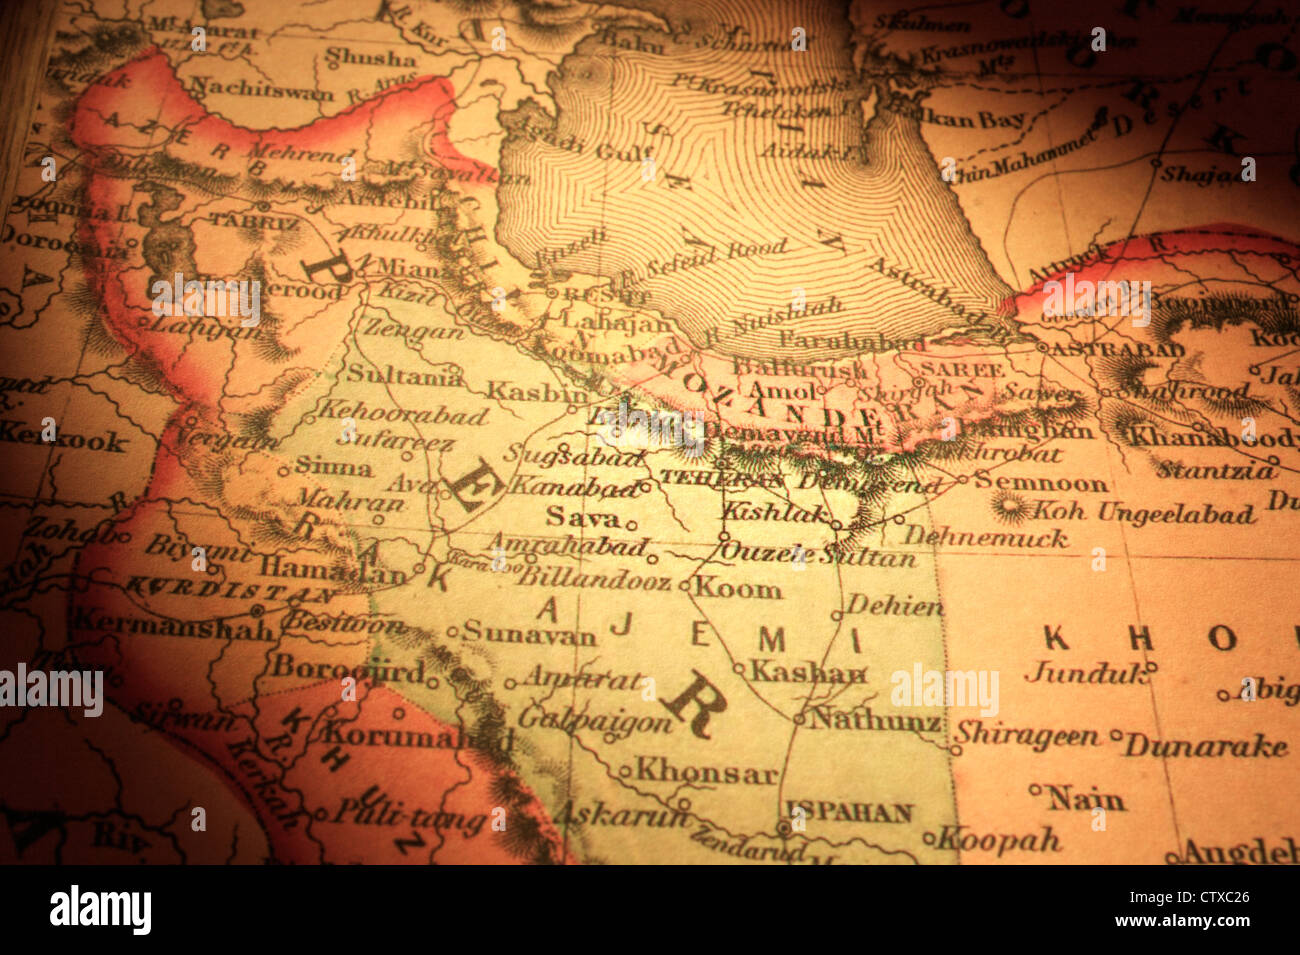 Old map of Iran/Persia, centered on Teheran. Map is from 1855 and ...